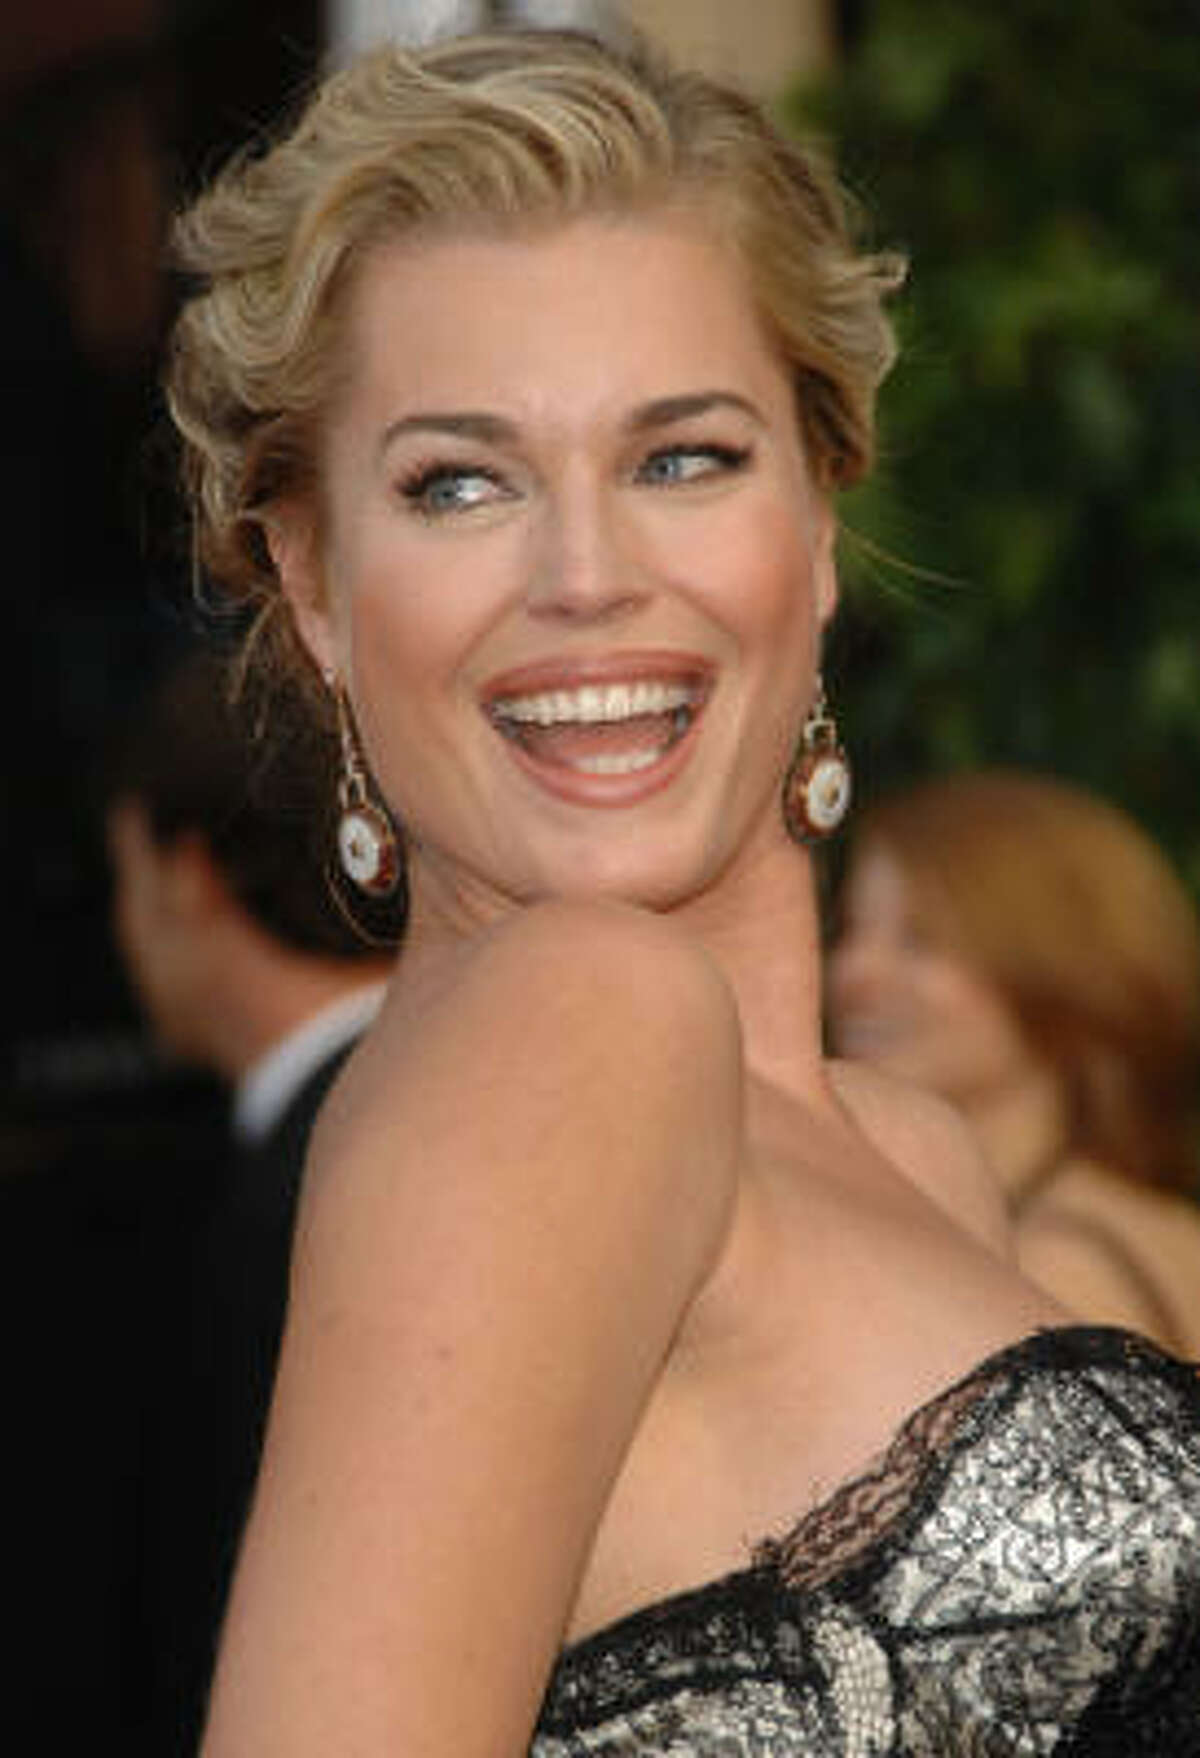 Rebecca Romijn has twin girls with Jerry O'Connell.